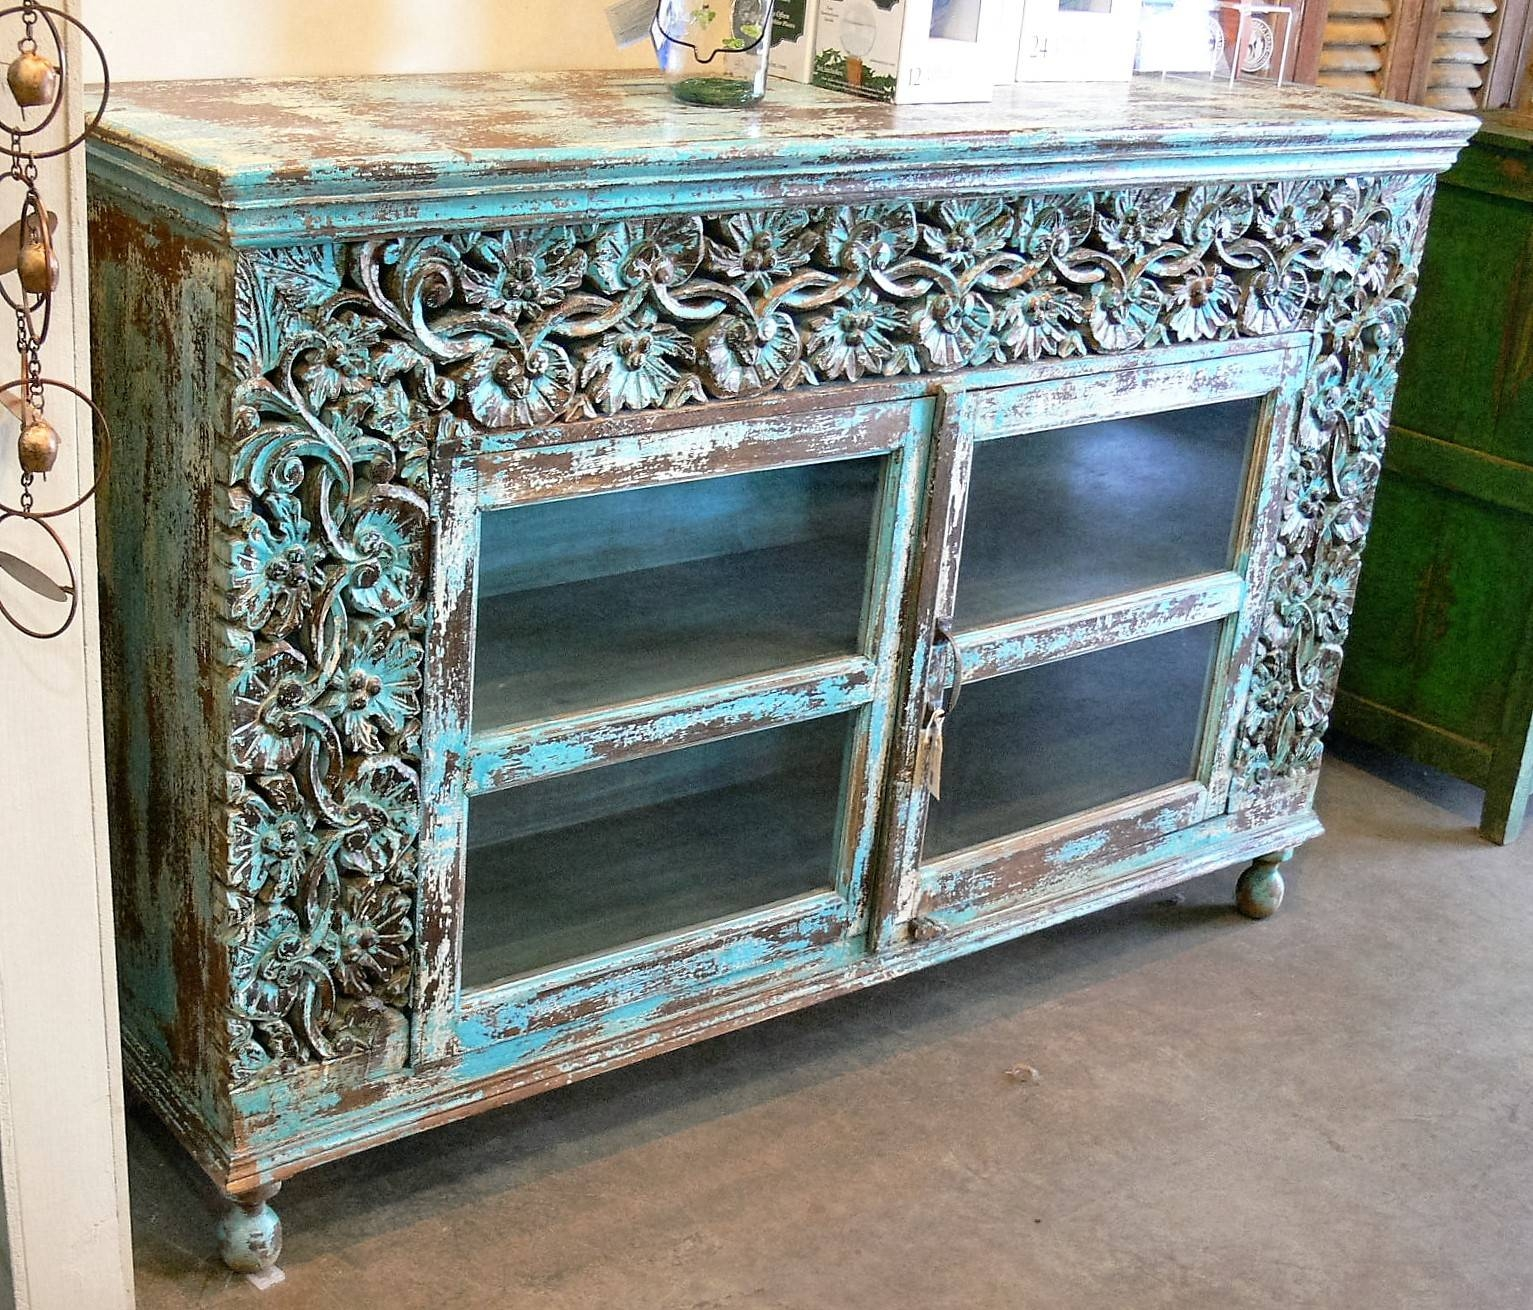 Sideboards & Buffets » Market Imports – Home, Patio, Antiques Within Turquoise Sideboards (View 5 of 15)